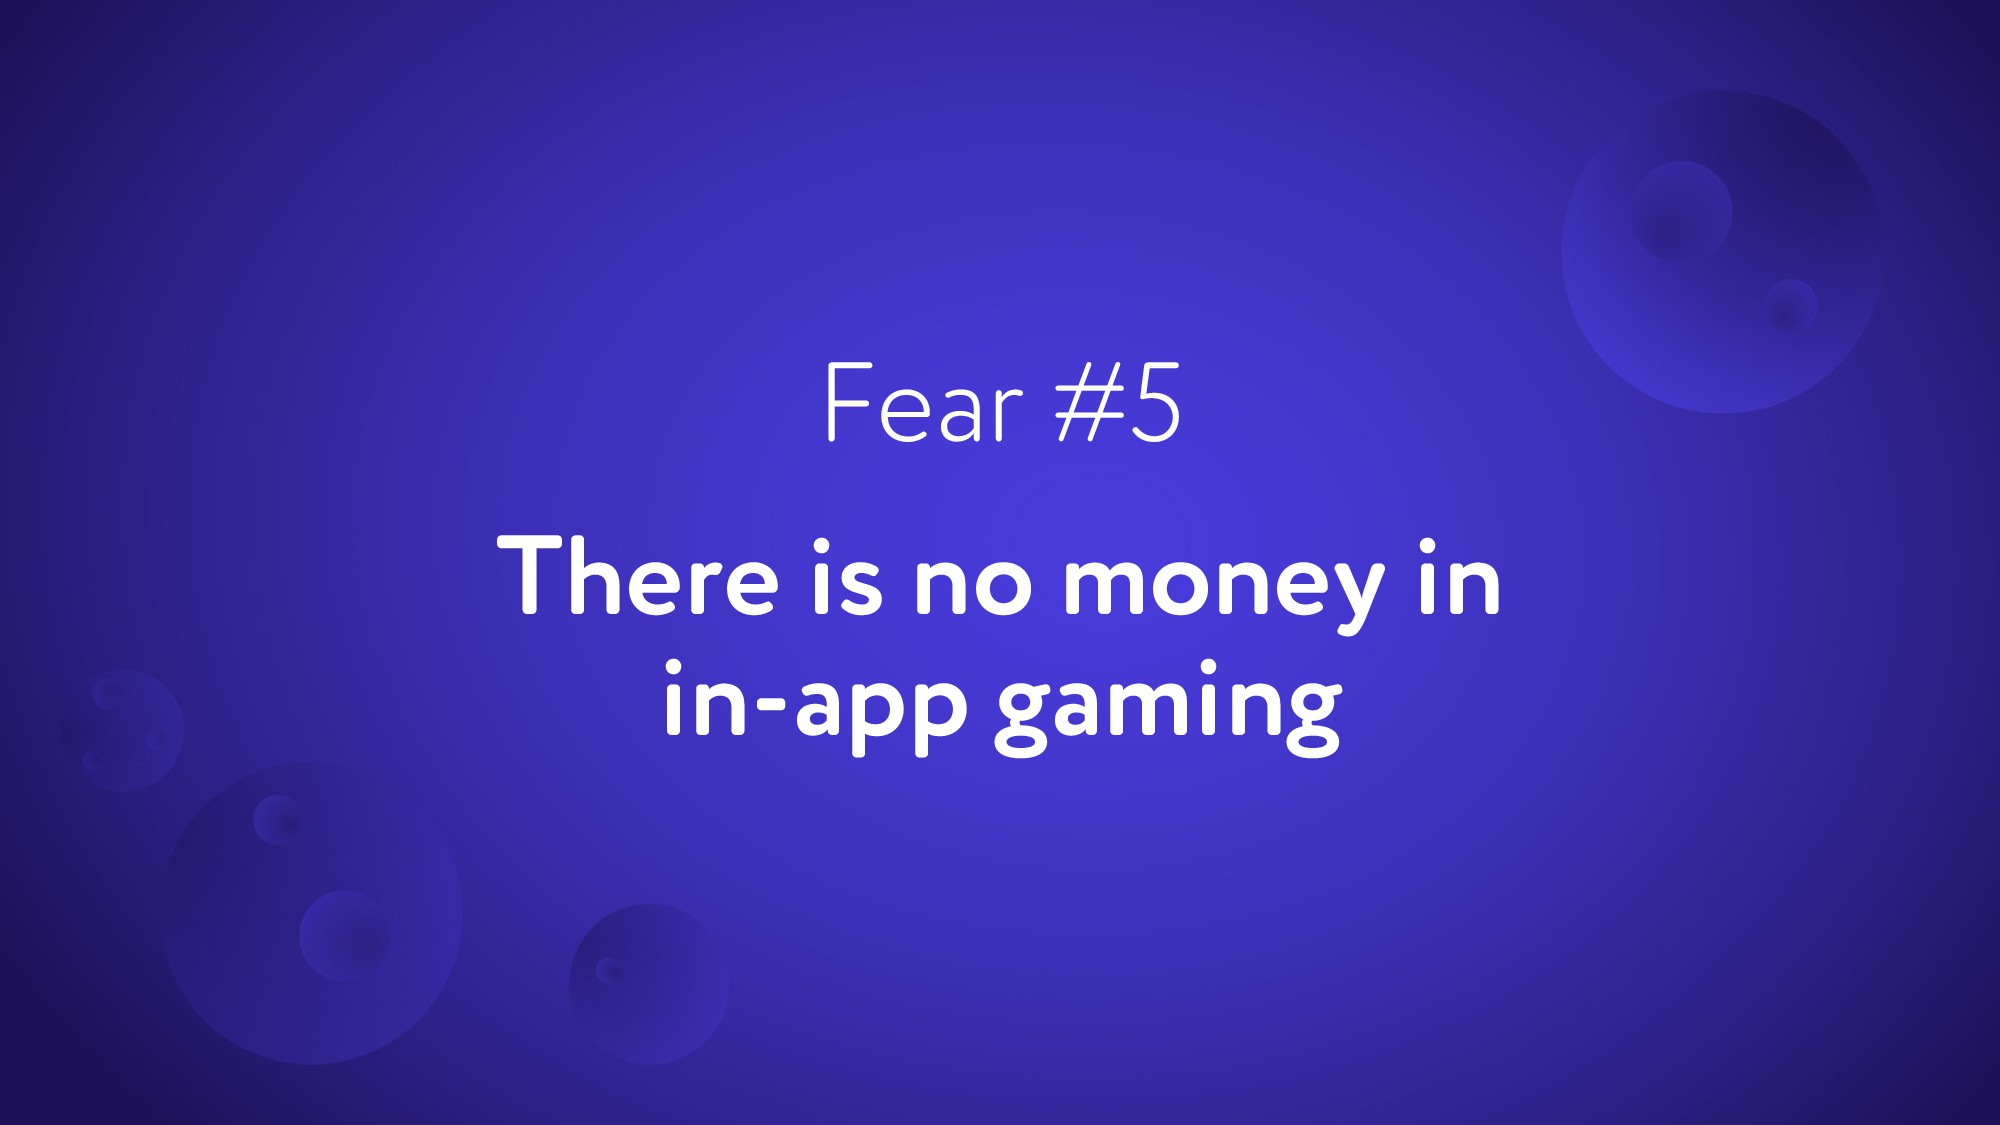 There is no money in in-app gaming Fear #5